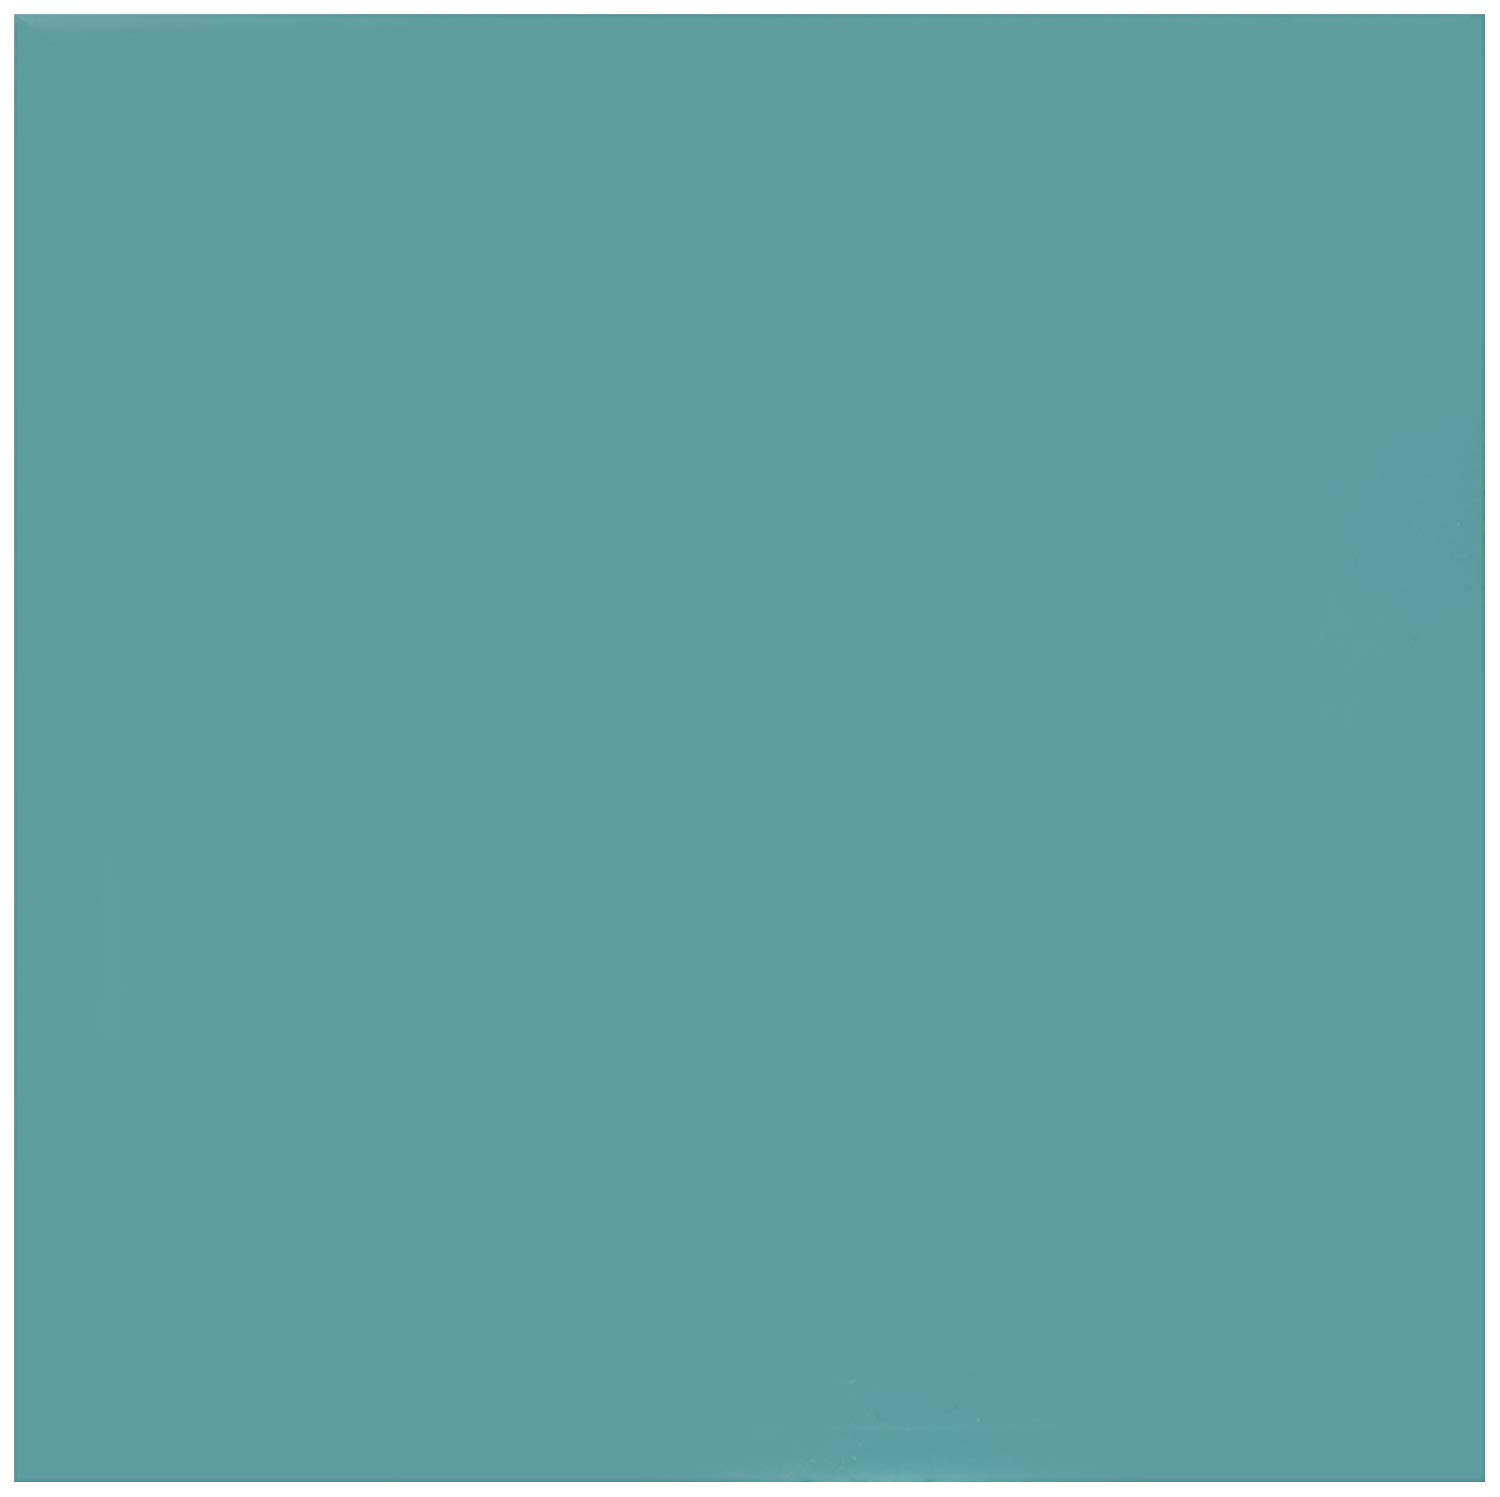 3dRose CST_159850_3 Plain Teal Blue Simple Modern Contemporary Solid One Single Color Turquoise Blue-Green Ceramic Tile Coasters (Set of 4)